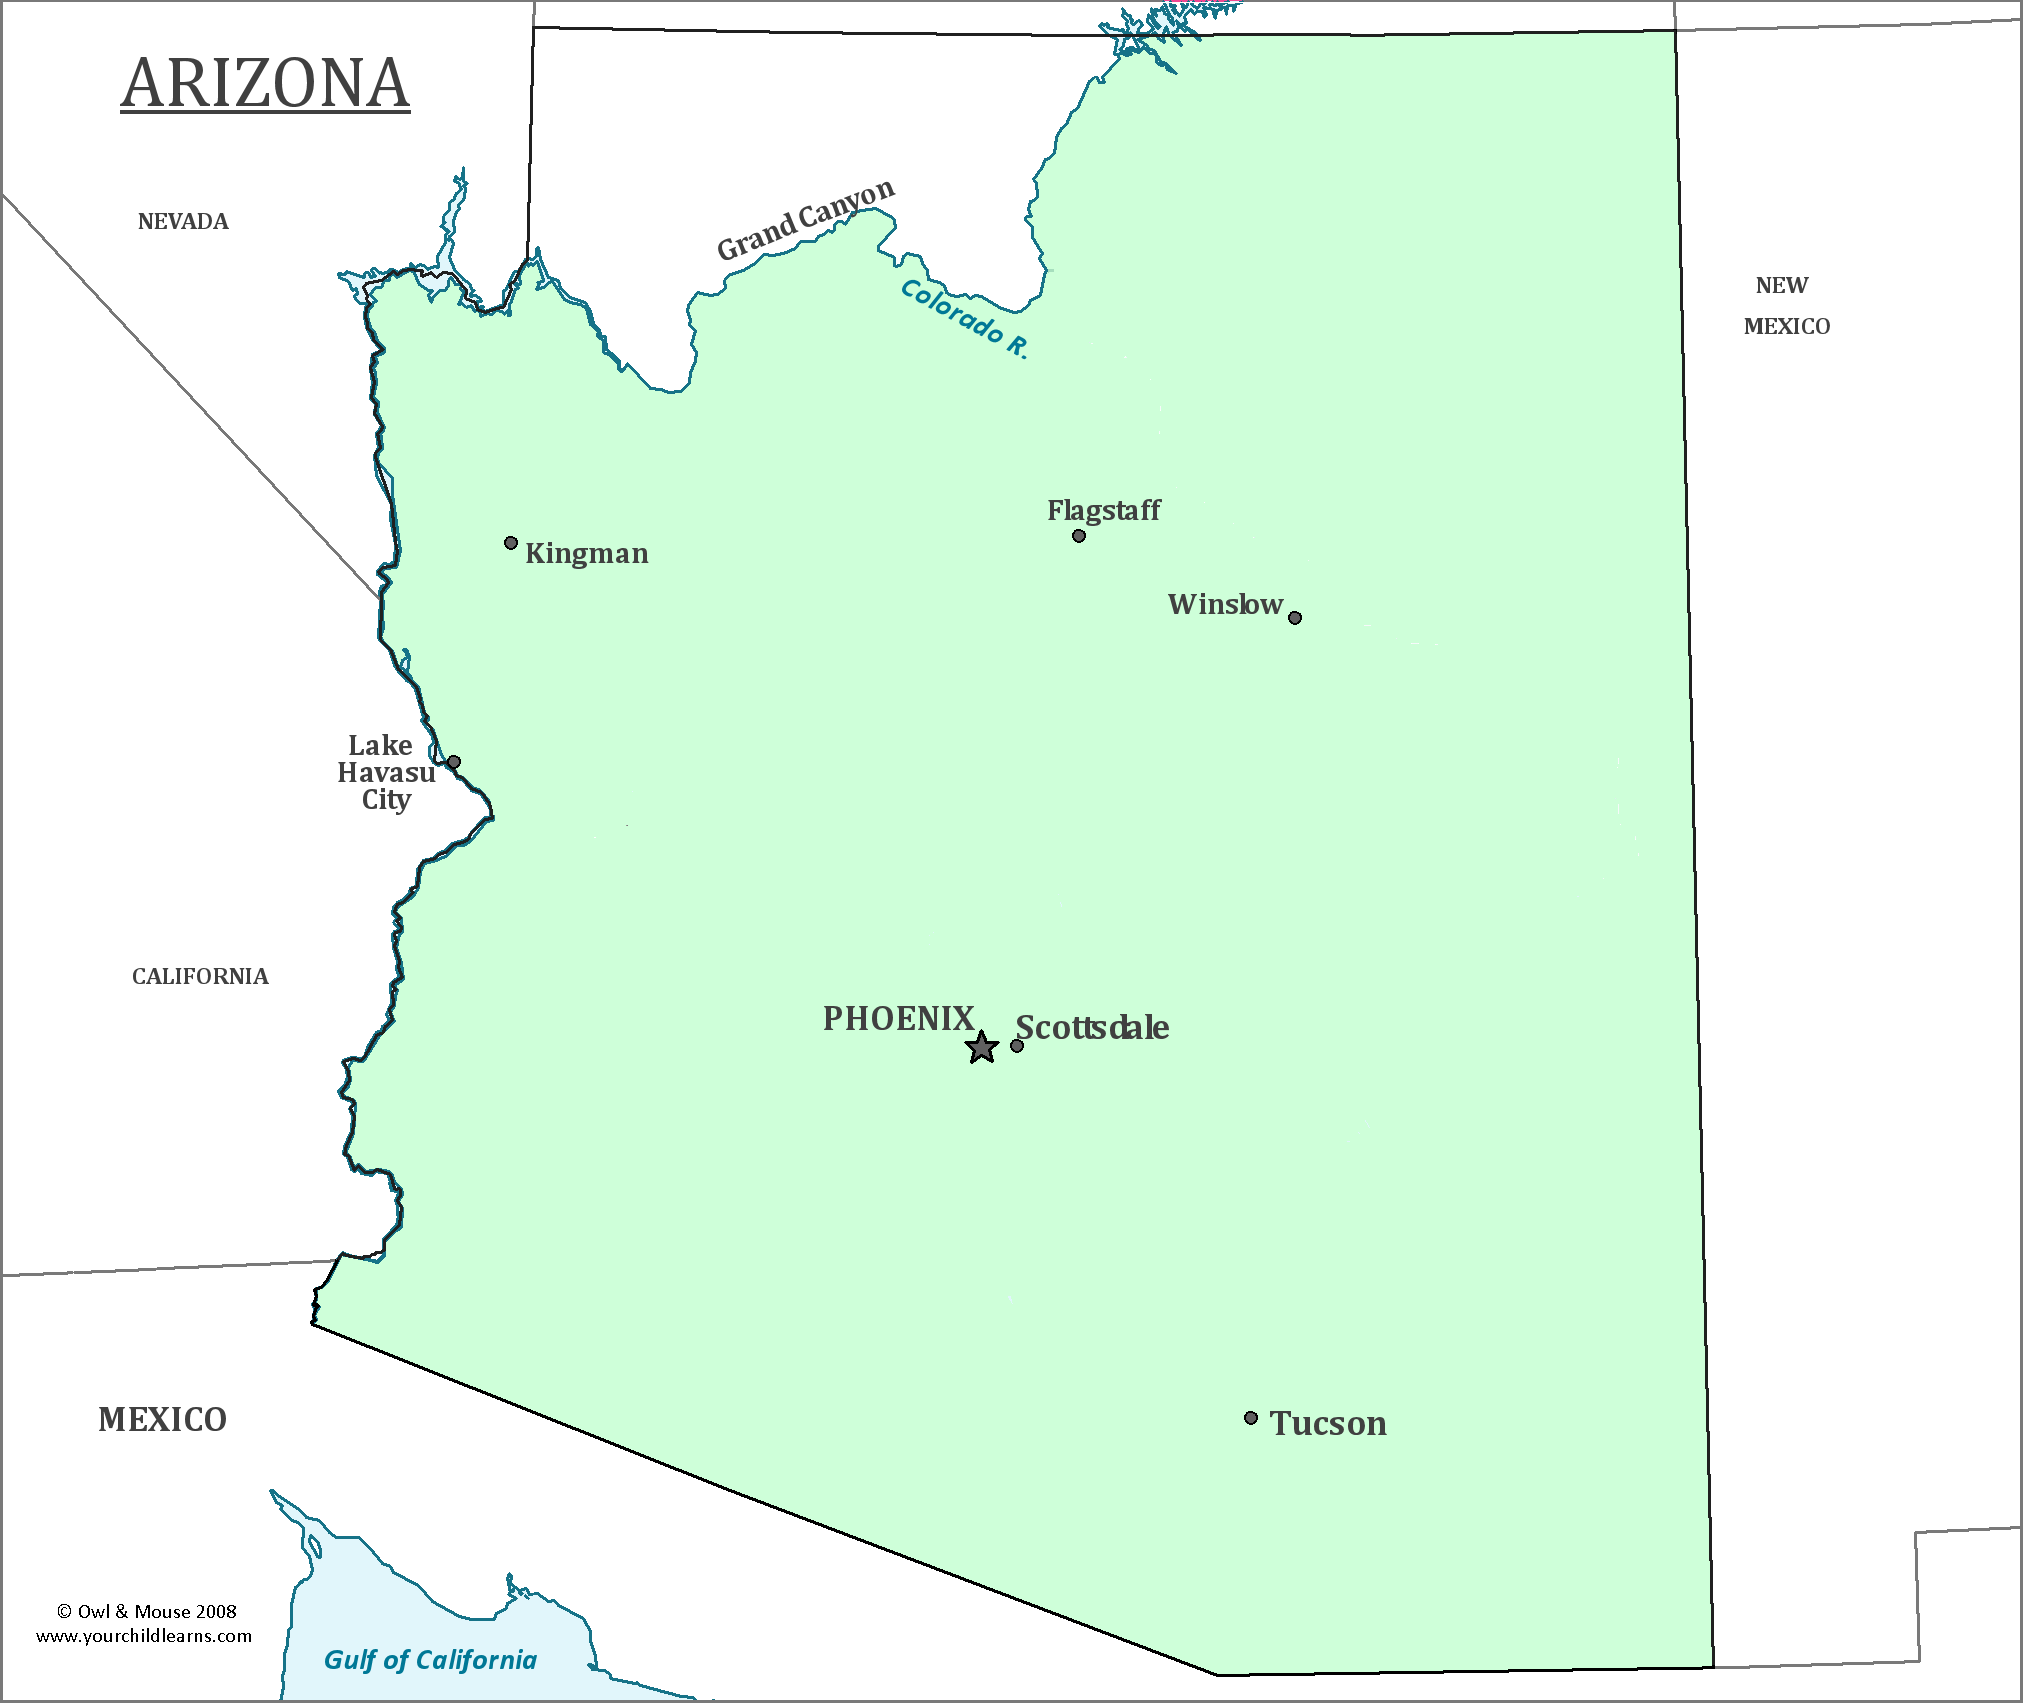 Arizona State Map - Map of Arizona and Information About the State